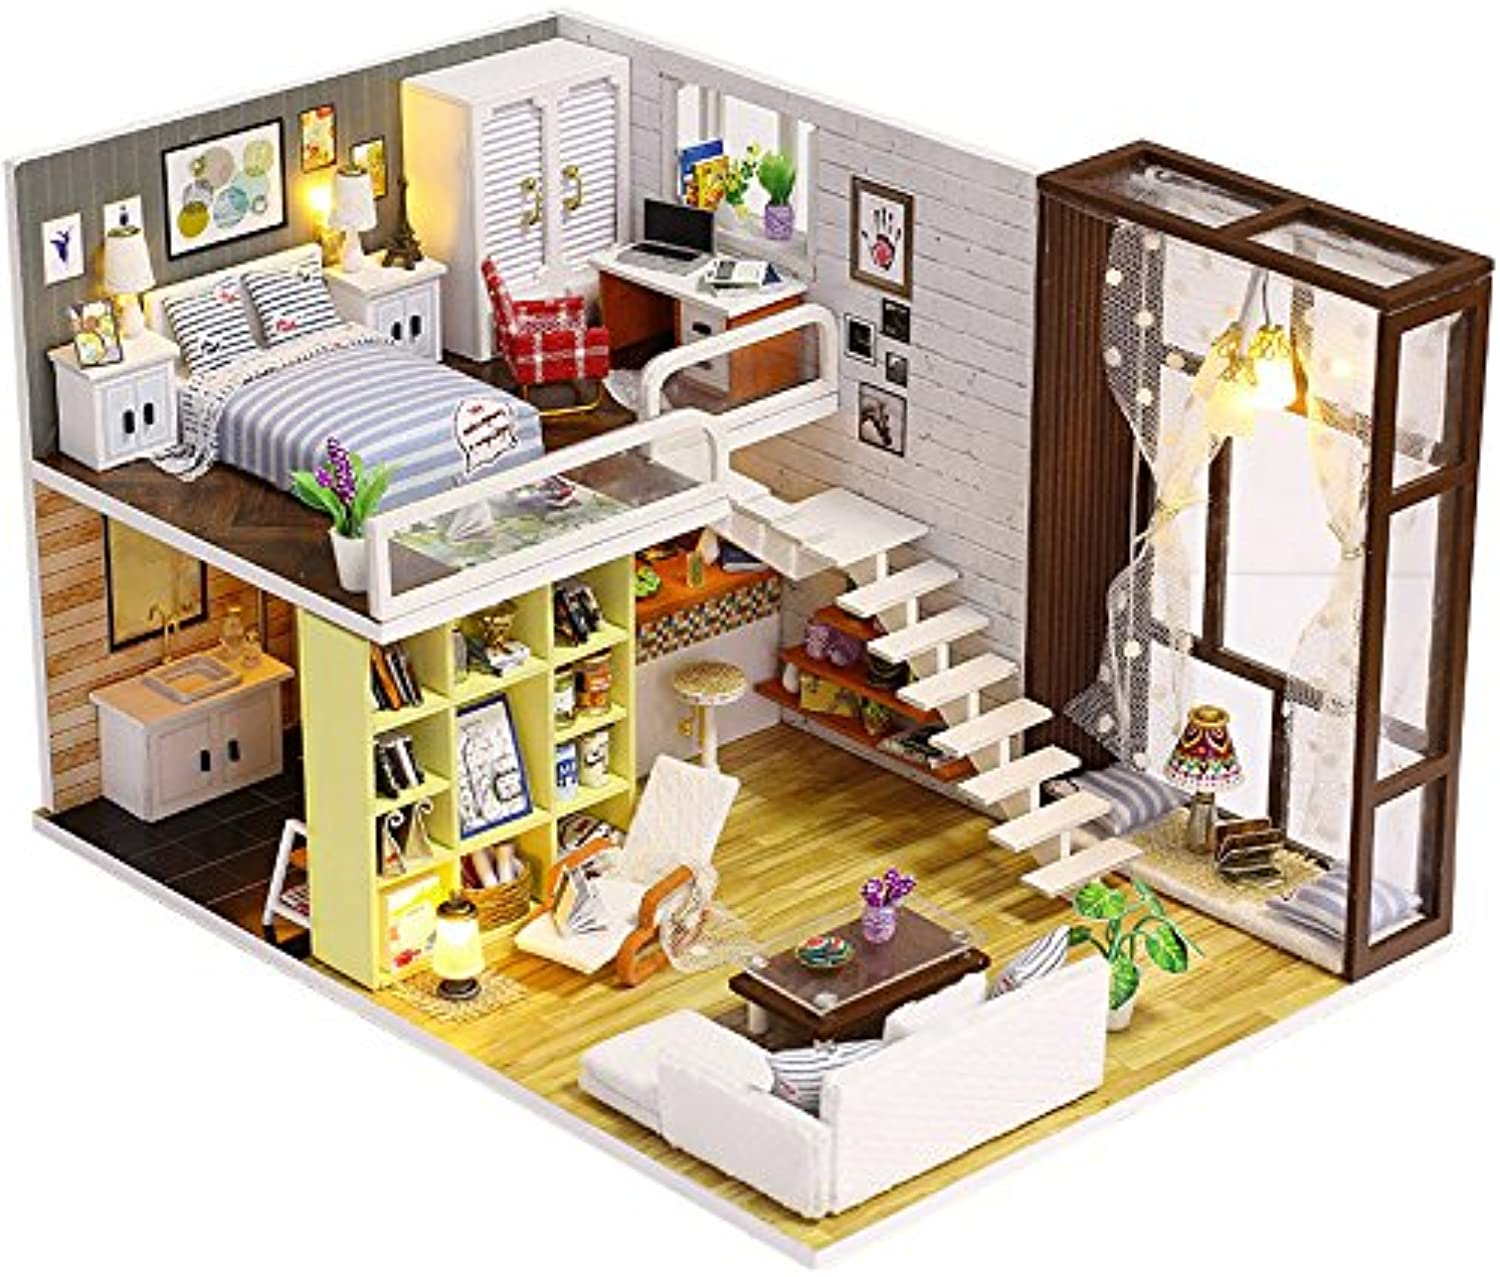 SODIAL DIY Wooden Doll House Toy Dollhouse Miniature Assemble Kit with Led Furnitures Handcraft Miniature Dollhouse Simple City Model